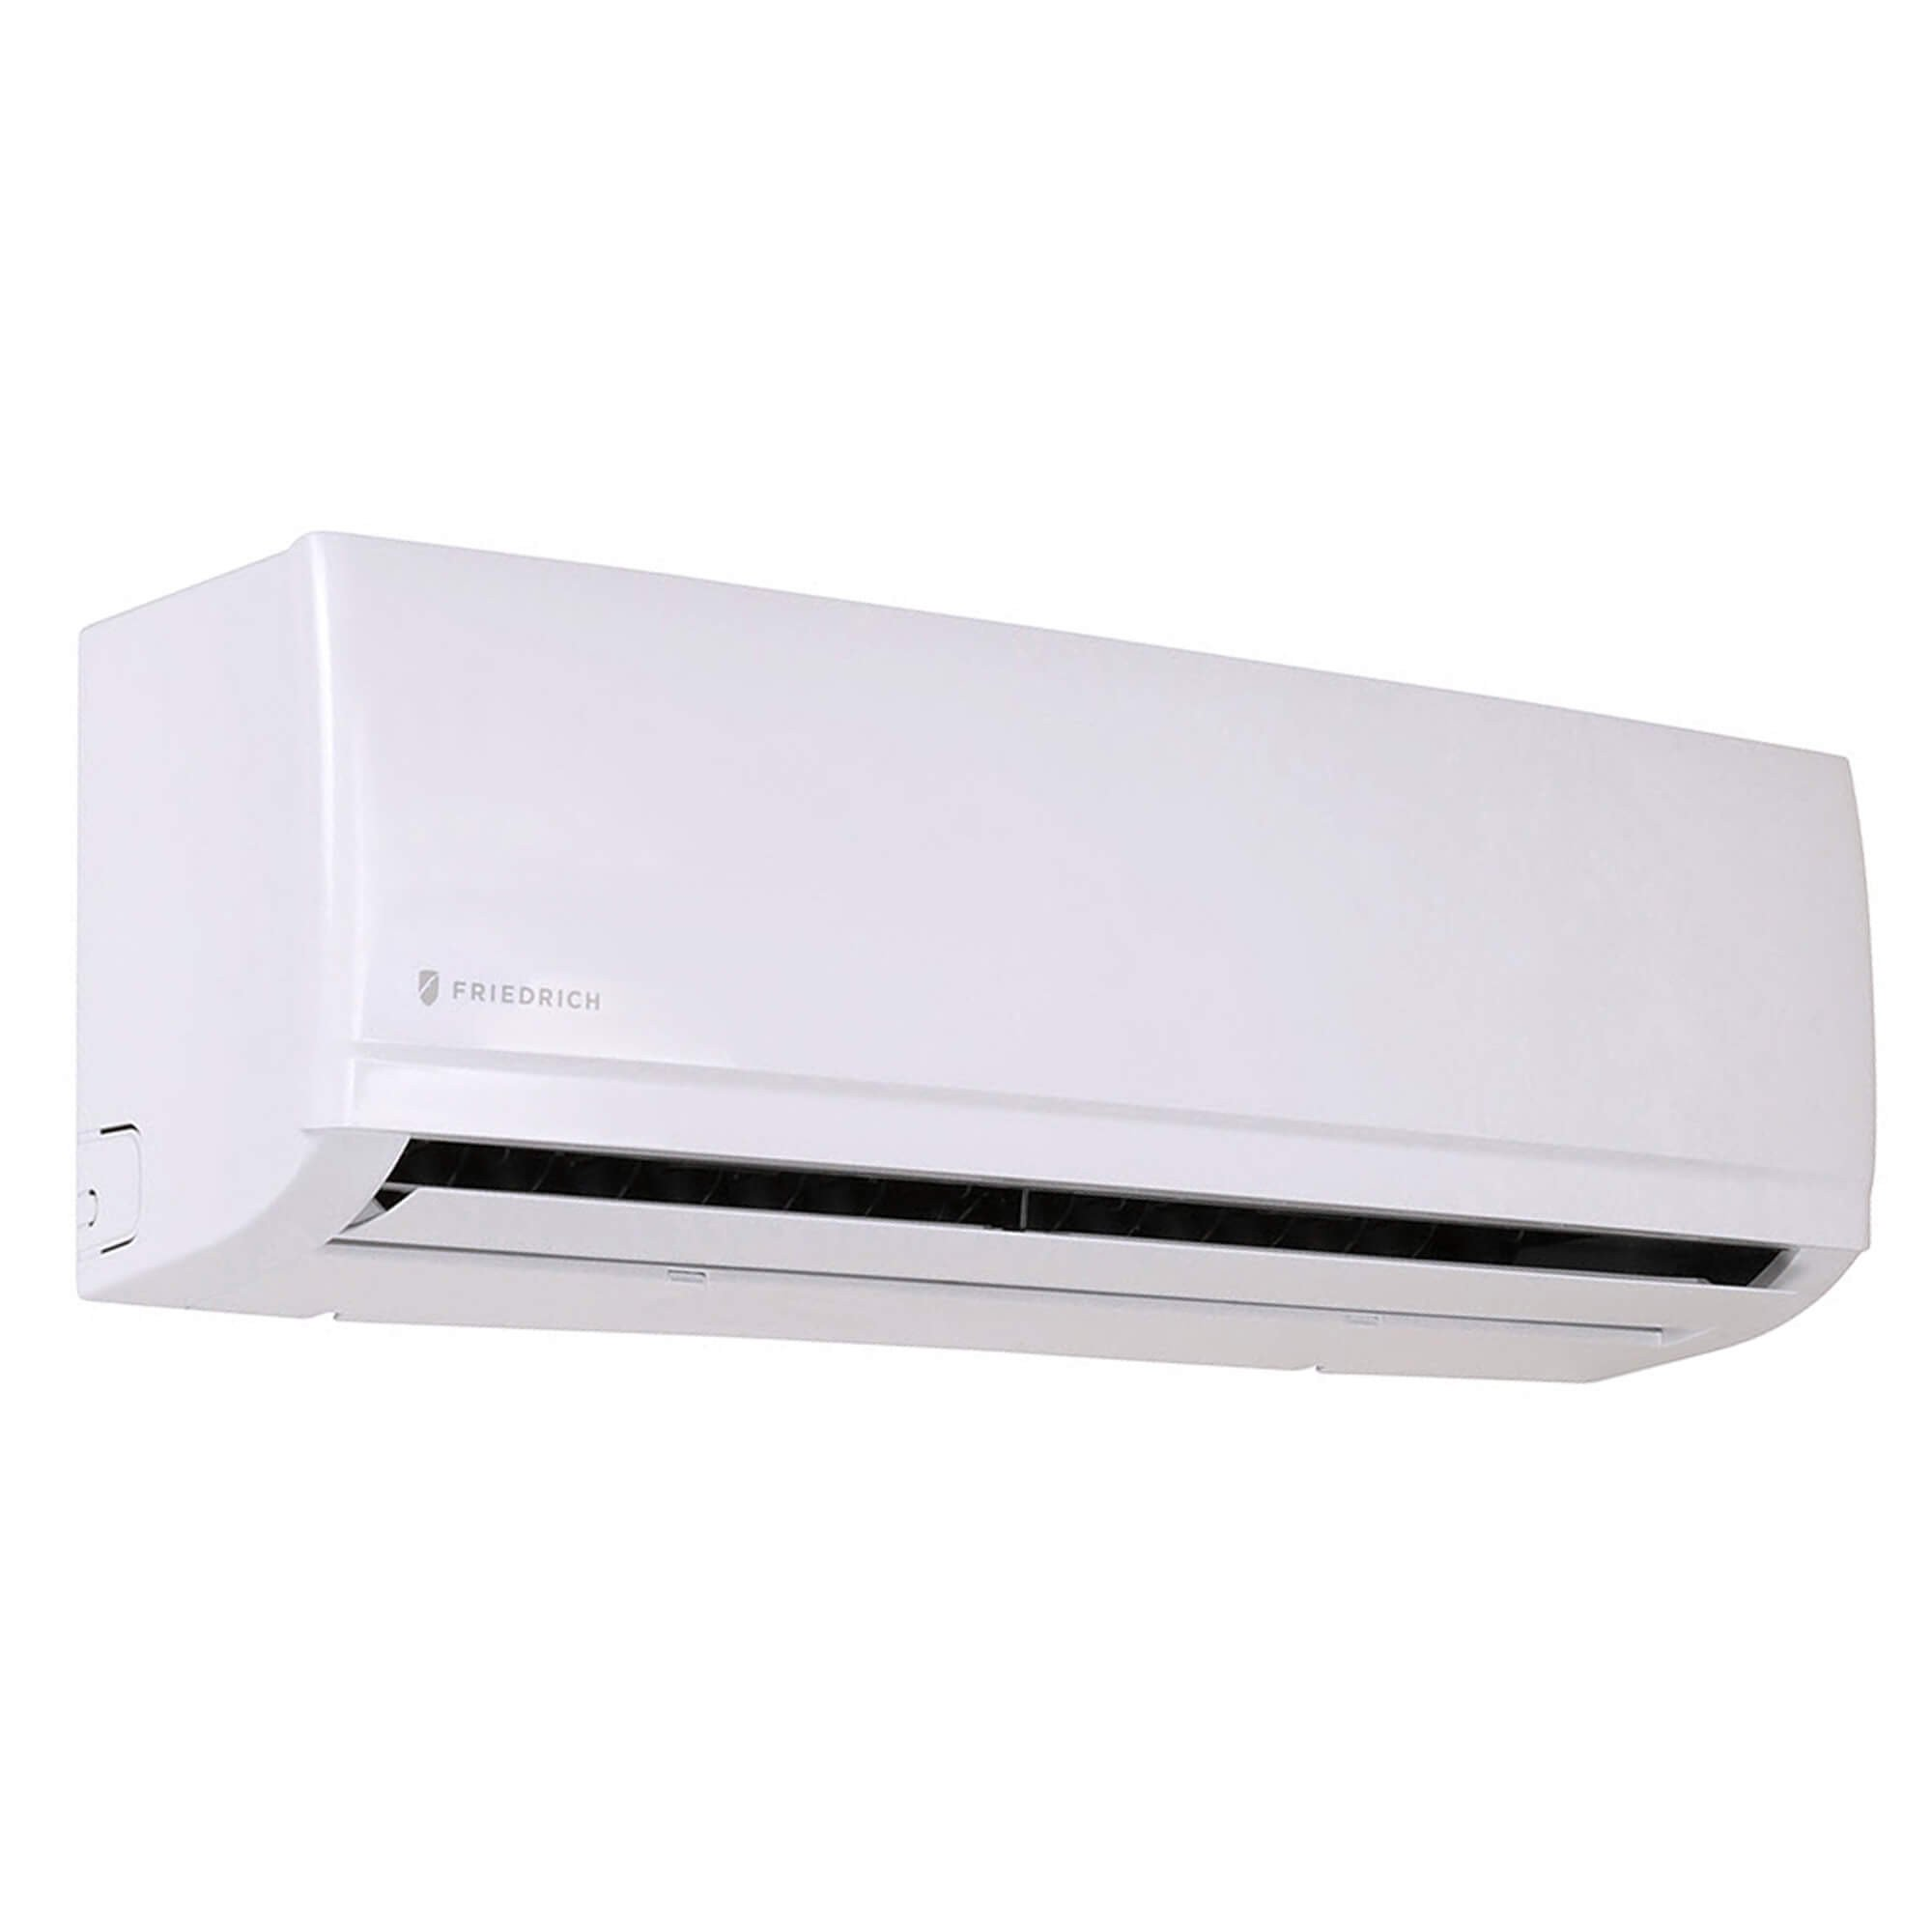 Small Bedroom Air Conditioner Best Of Room Air Conditioning solutions Find Your Friedrich